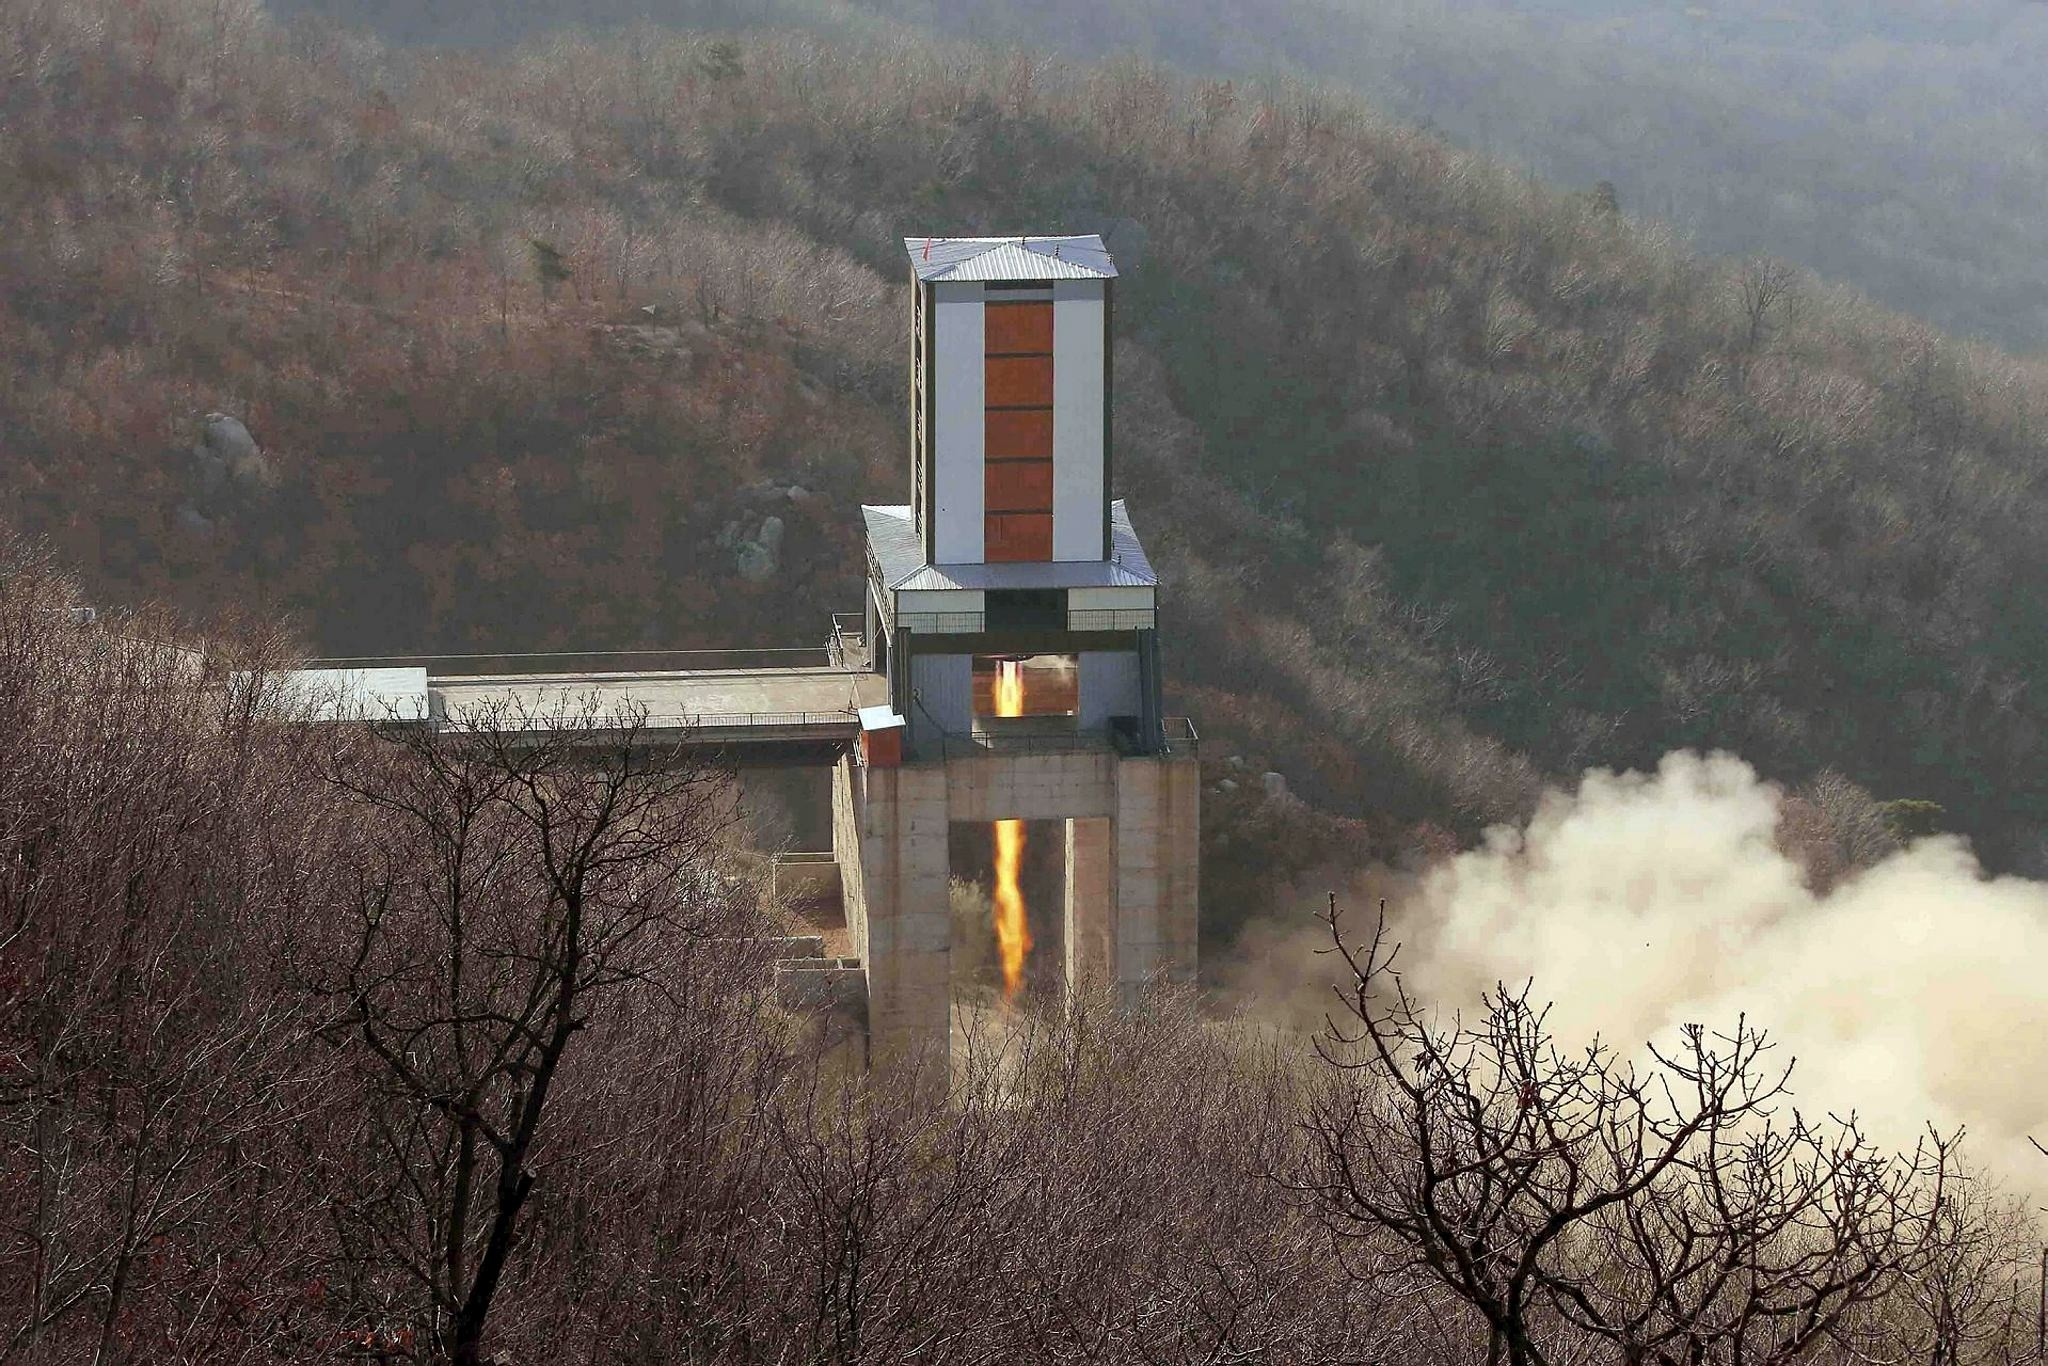 A new engine for an intercontinental ballistic missile (ICBM) is tested at a test site at Sohae Space Center in Cholsan County, North Pyongan province in North Korea in this undated photo released by KCNA on April 9, 2016.